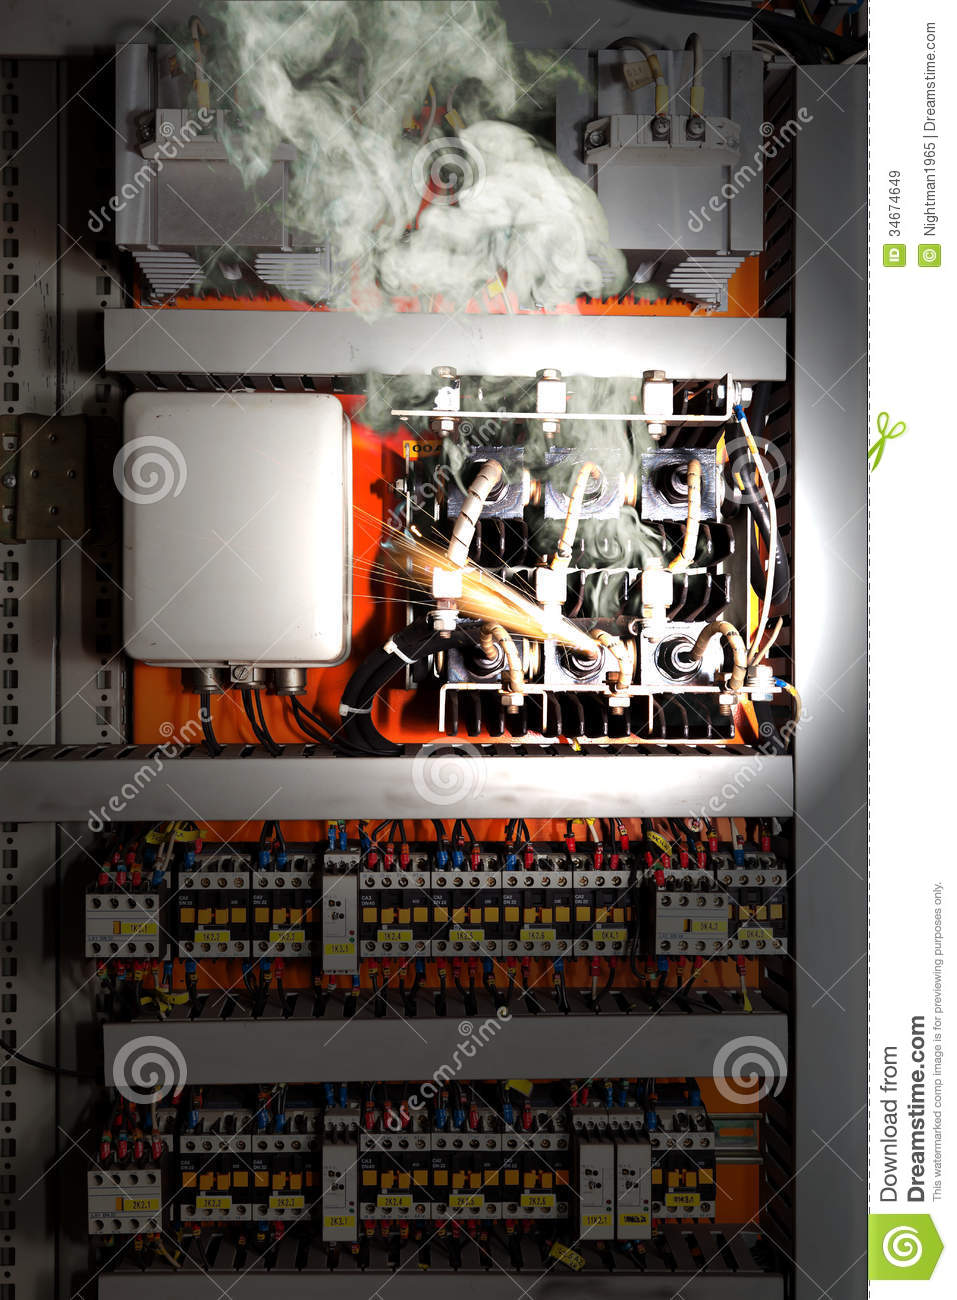 2000 s10 fuse box glove box electric shock royalty free stock images image 34674649